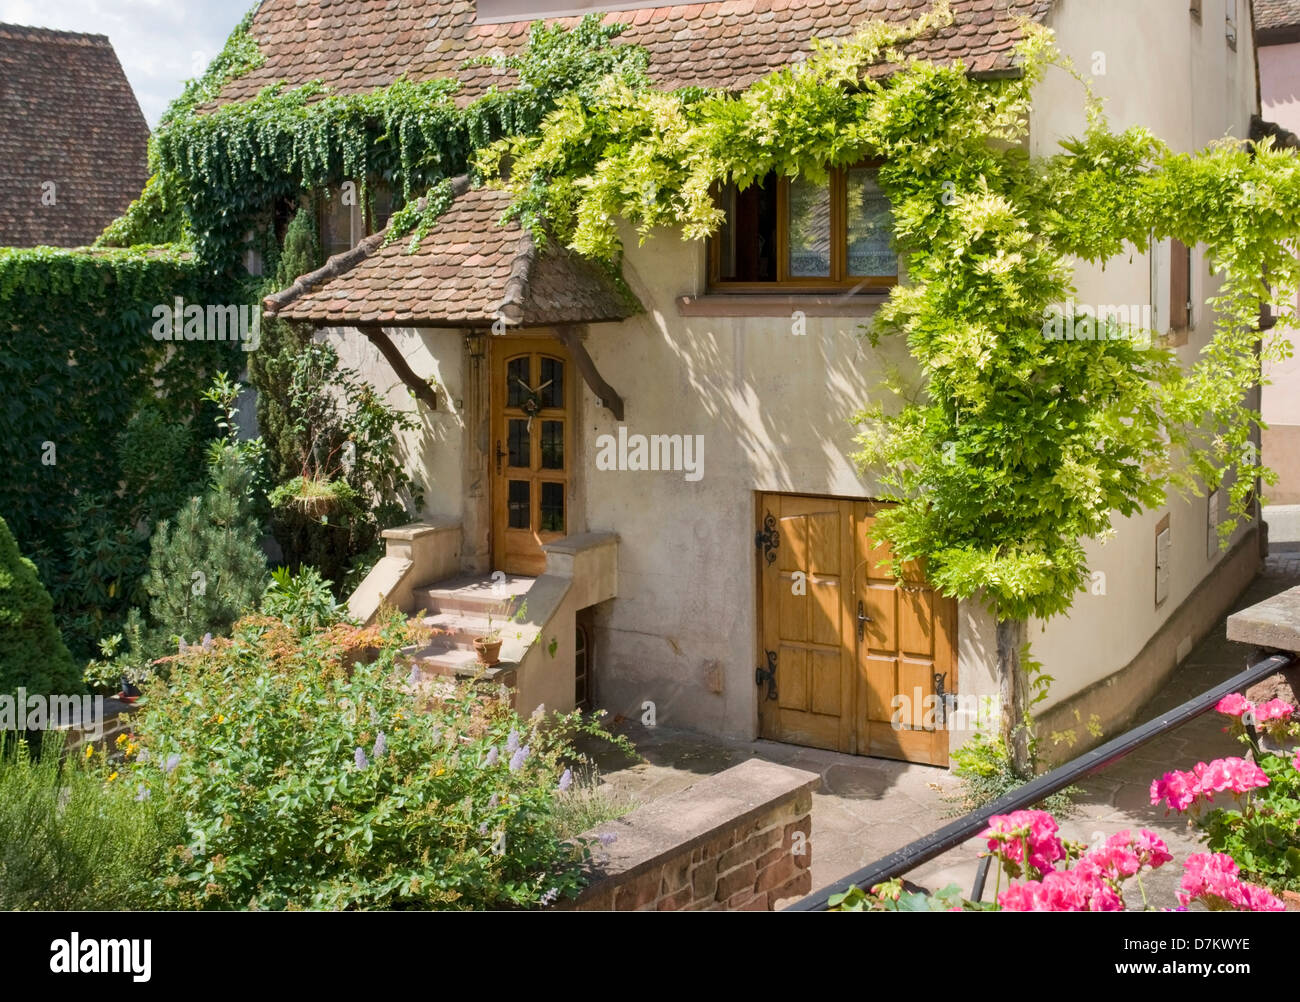 idyllic overgrown house detail in Mittelbergheim, a village of a region in France named Alsace - Stock Image